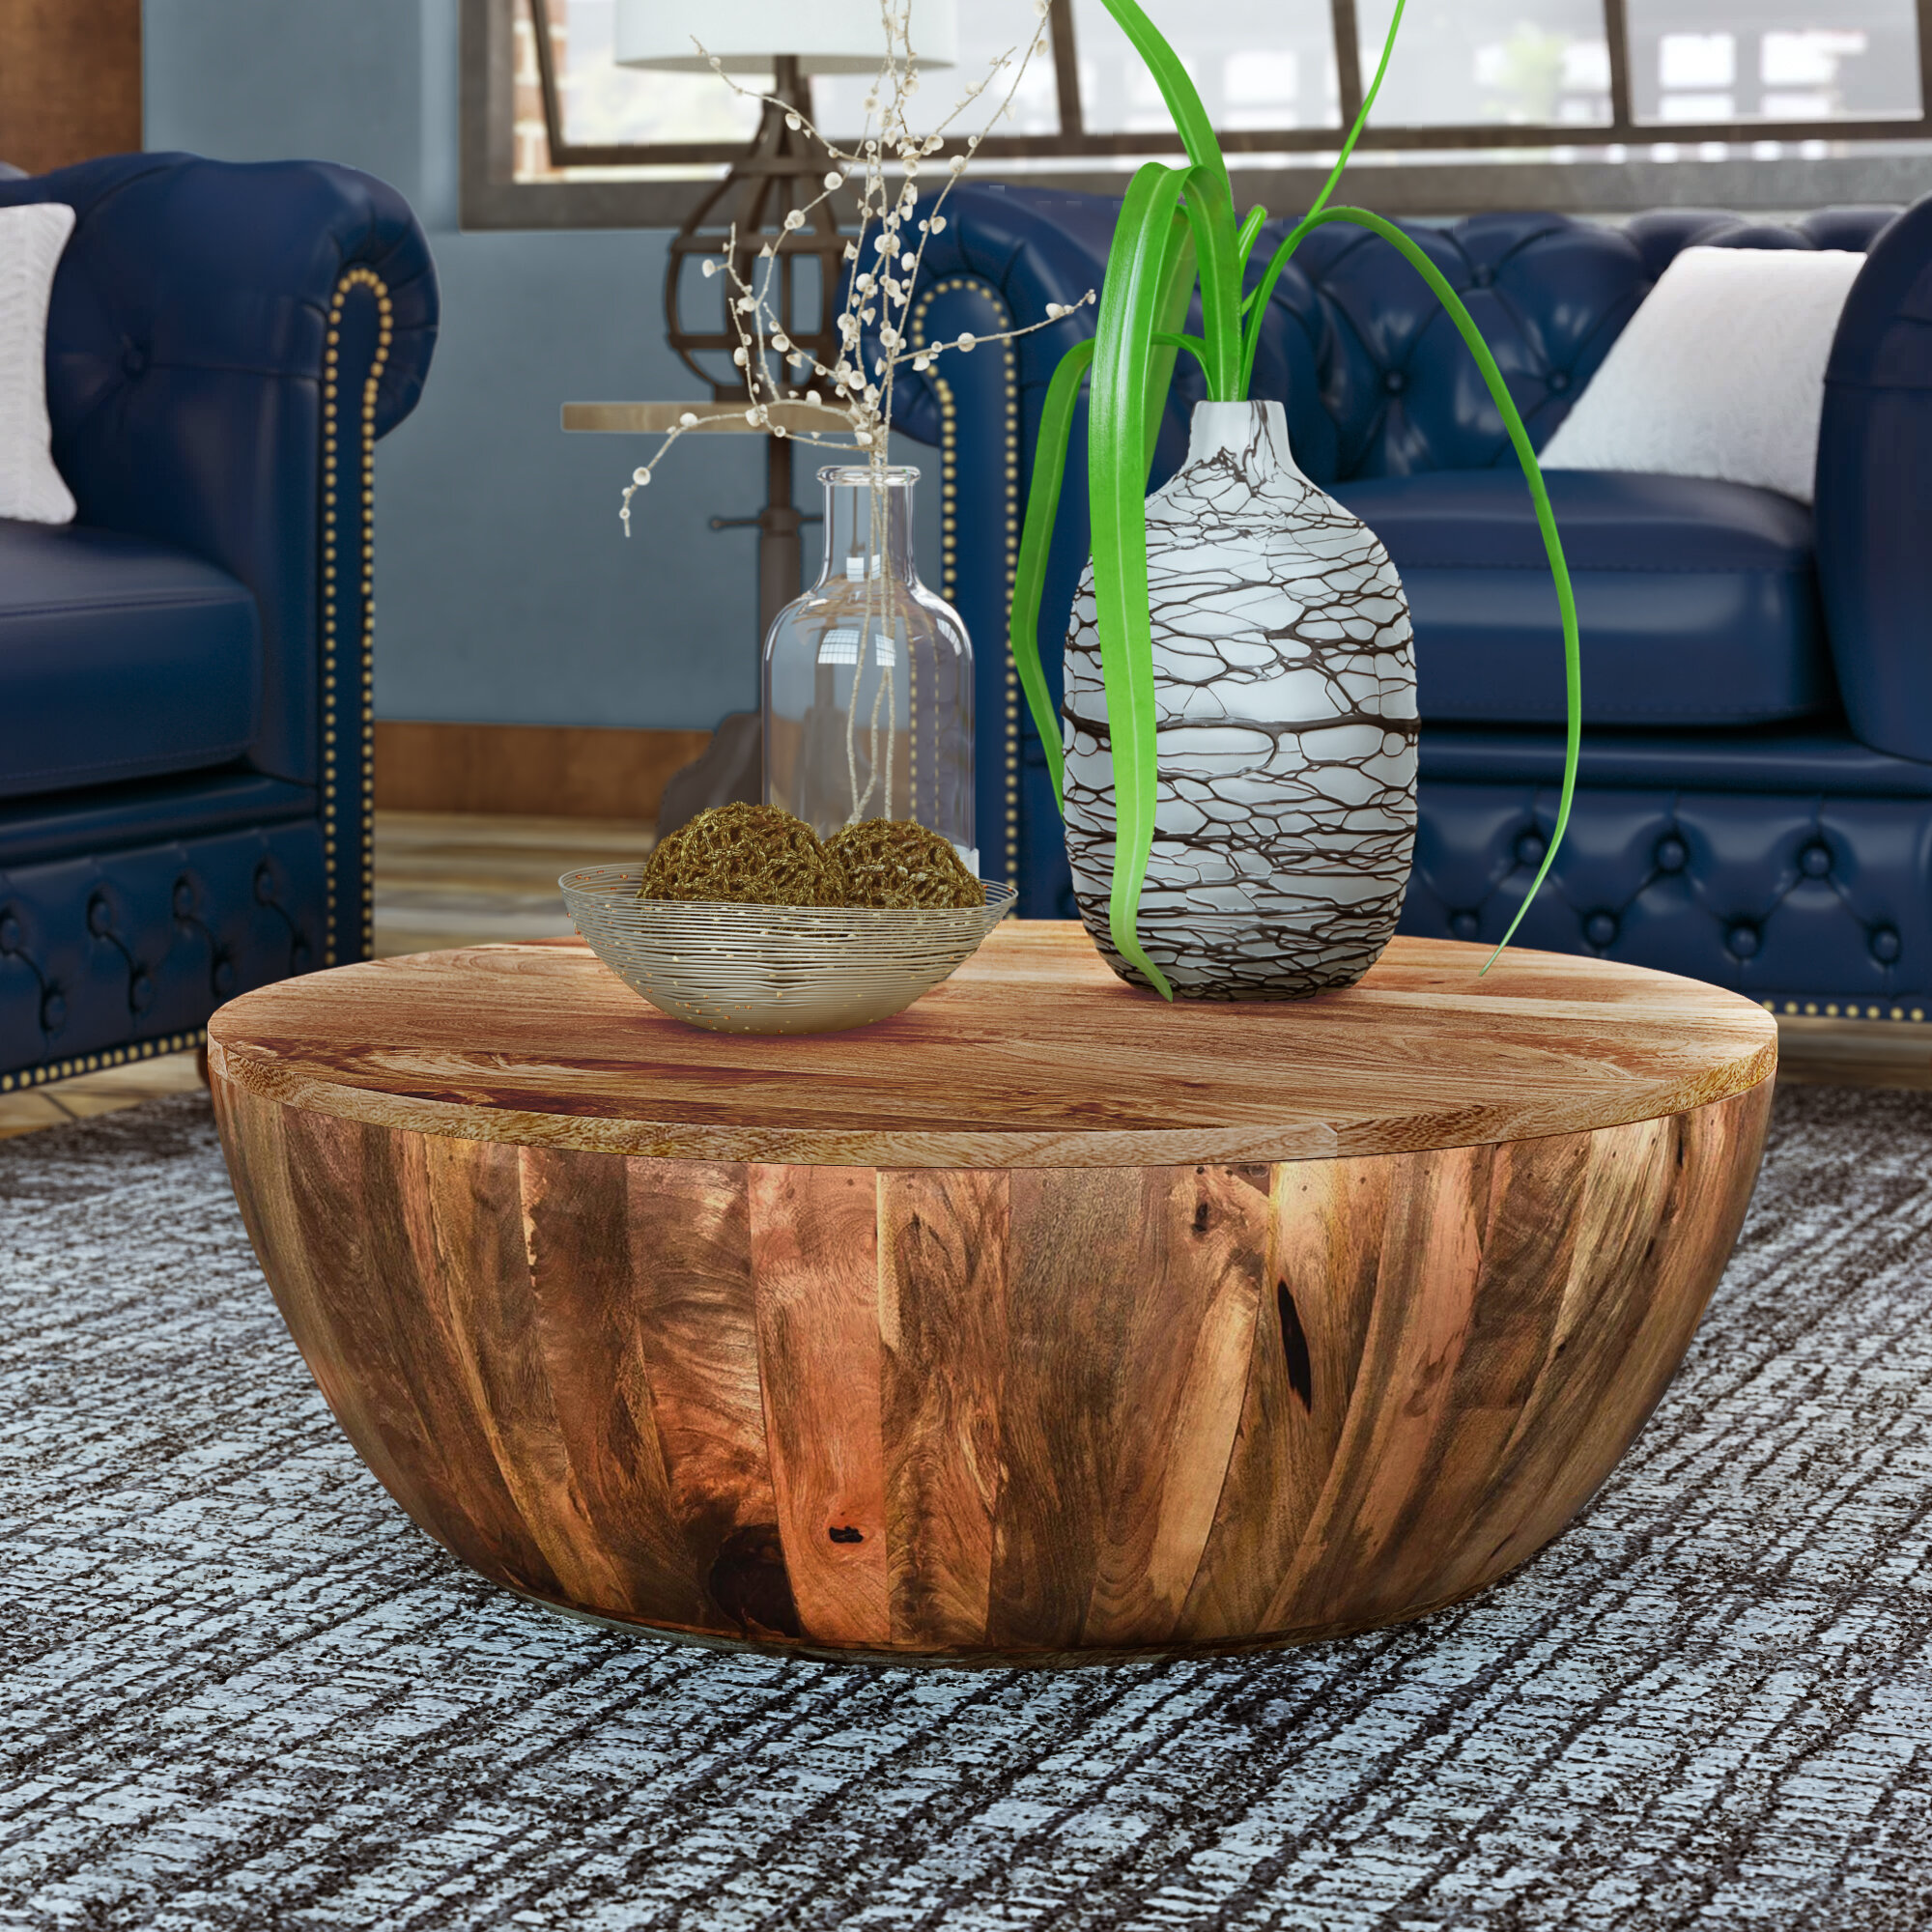 Union Rustic Beliveau Solid Wood Drum Coffee Table Reviews Wayfair You do not have to worry about its appearance since it offers a. the urban port